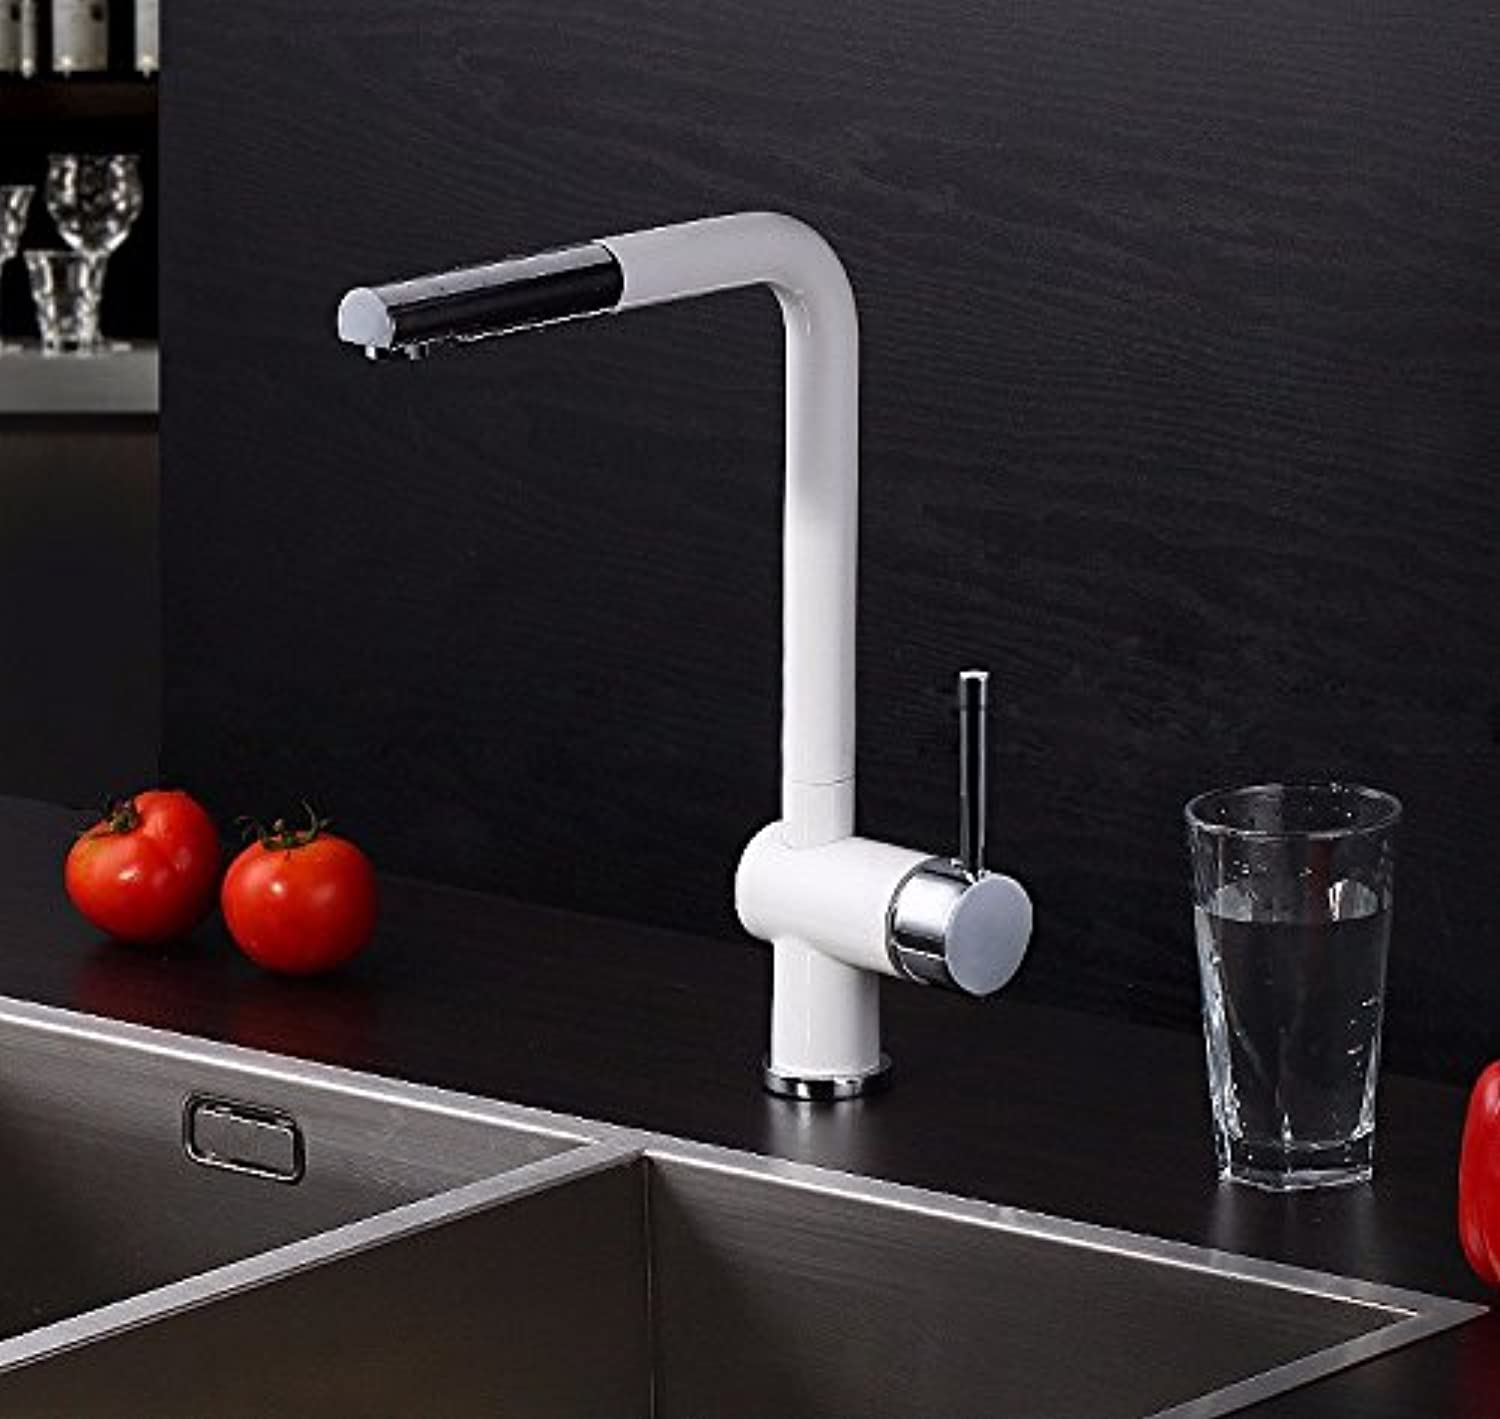 GrowtherHOME New Design Pull Out Kitchen Faucet 100% Brass Single Hole Sink Taps Thermostatic Mixer White Lacquer Painted Facuet